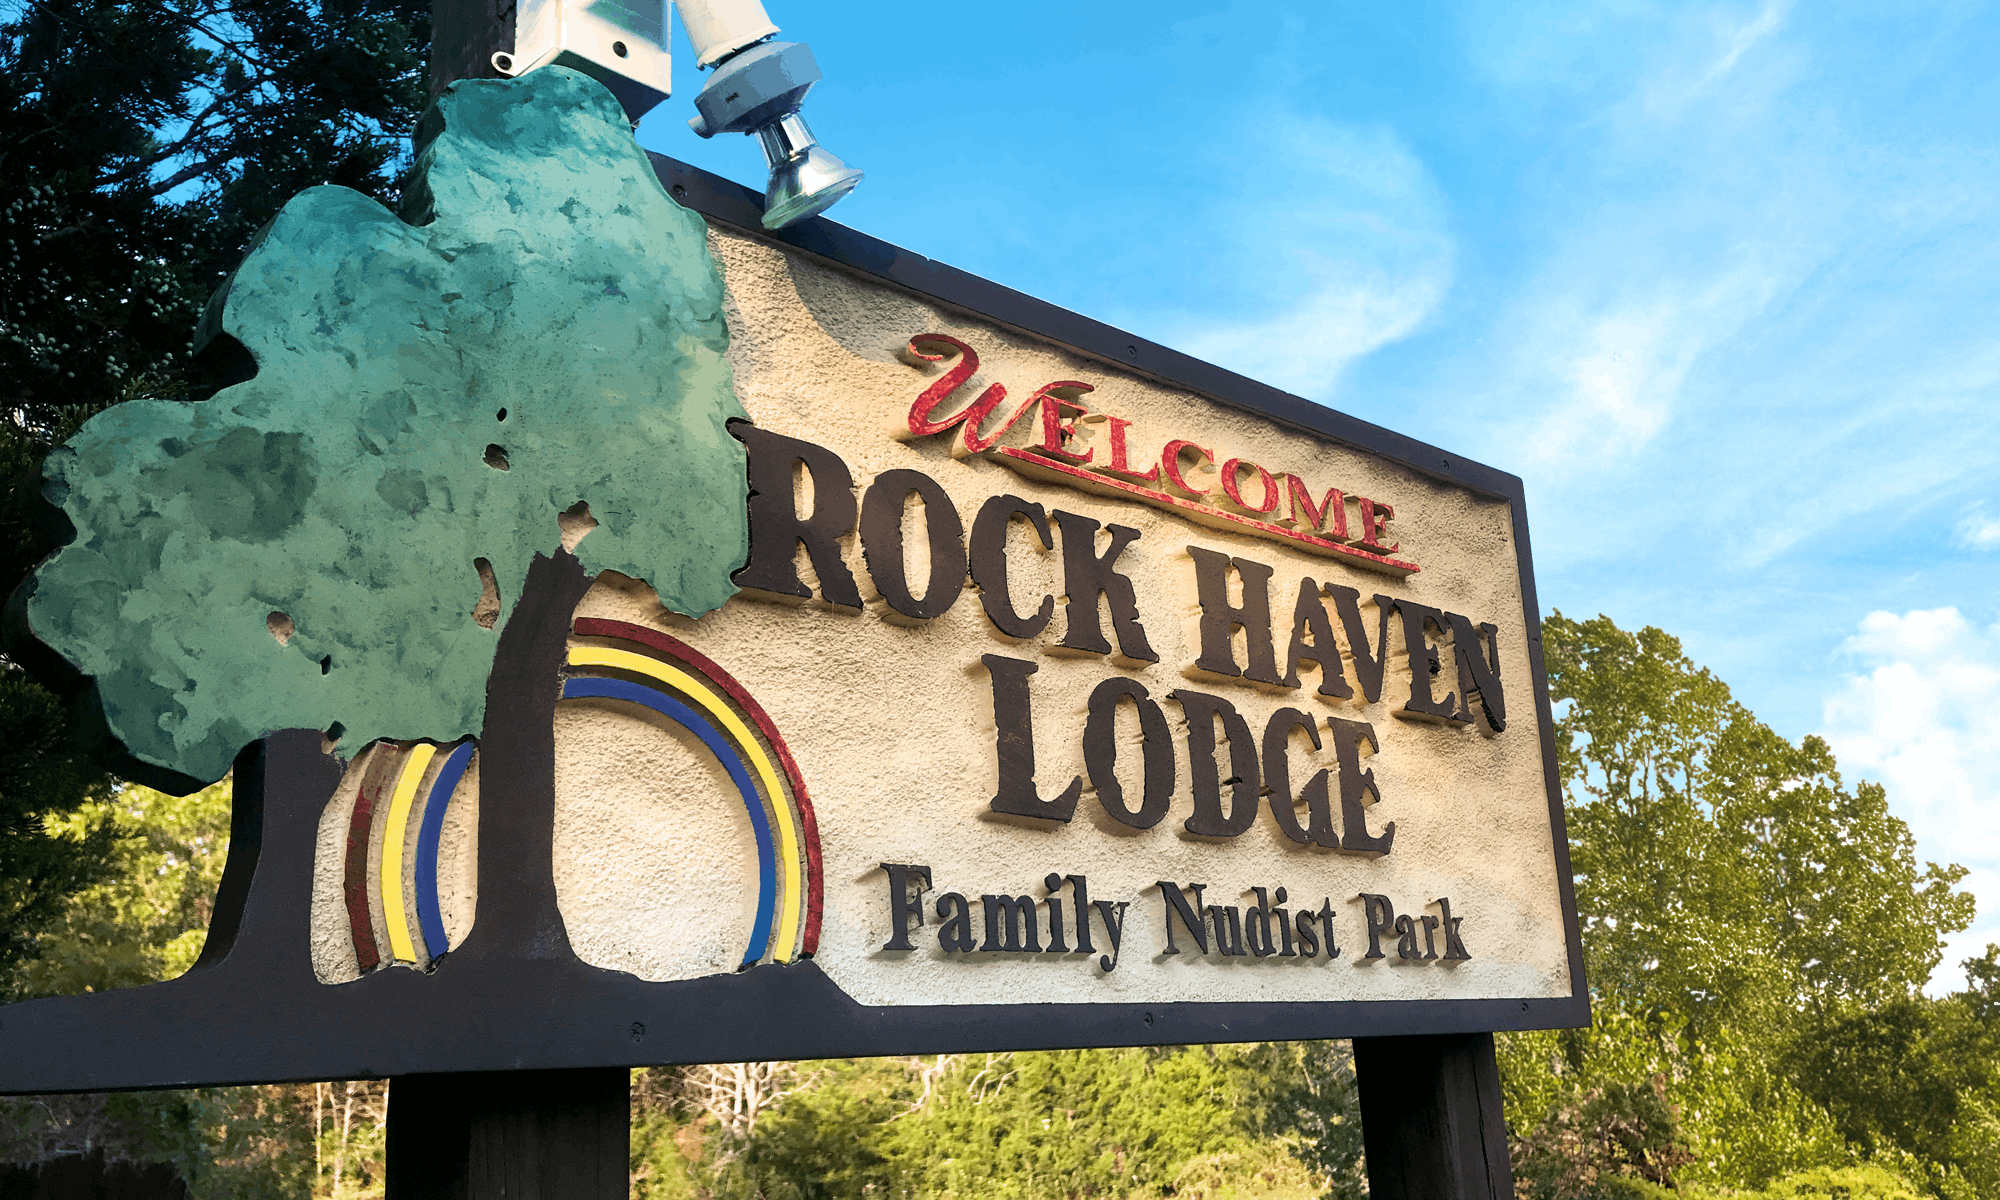 Rock Haven Lodge Welcome Sign